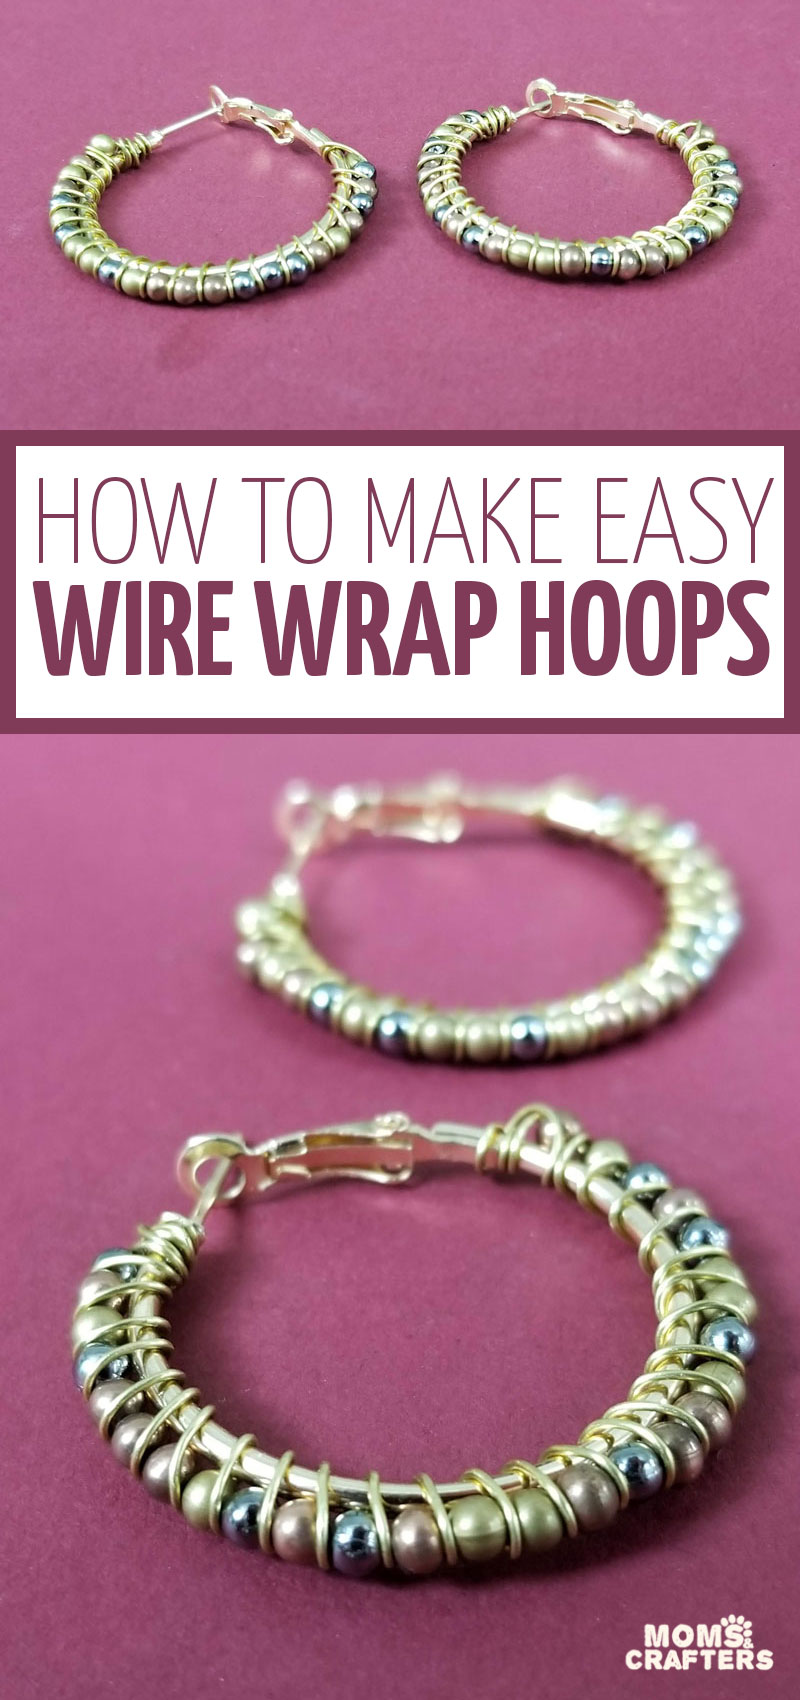 Learn how to wire wrap hoop earrings the easy way! This beginner wire wrapping tutorial and DIY jewelry making craft project teaches you wire wrapping basics and how to make wire wrapped hoop earrings as a fun accessory!